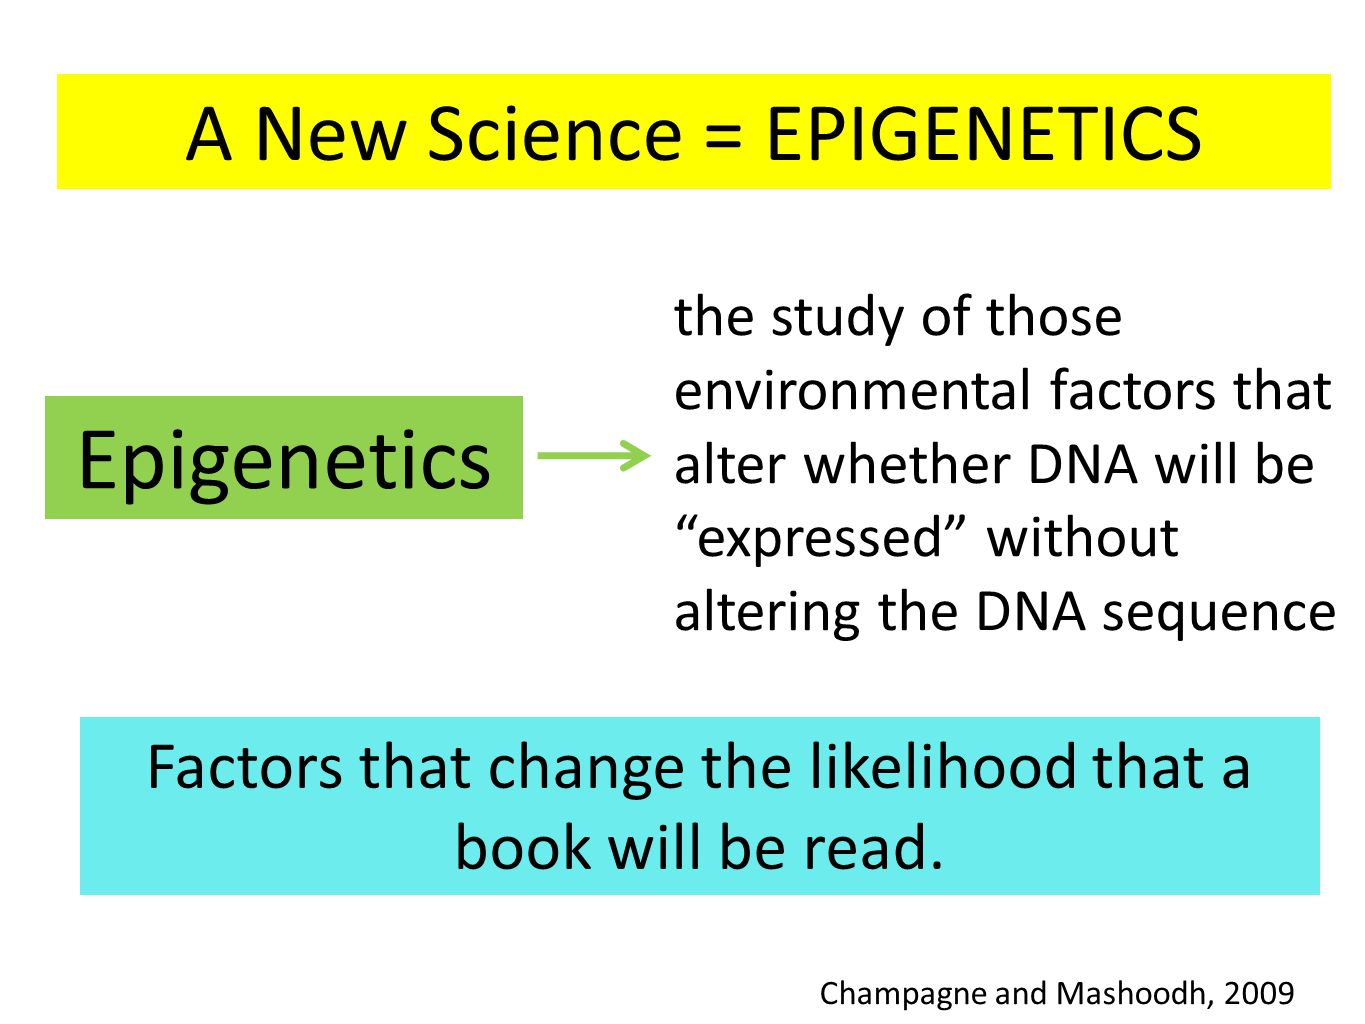 A New Science = EPIGENETICS Epigenetics the study of those environmental factors that alter whether DNA will be expressed without altering the DNA sequence Factors that change the likelihood that a book will be read.